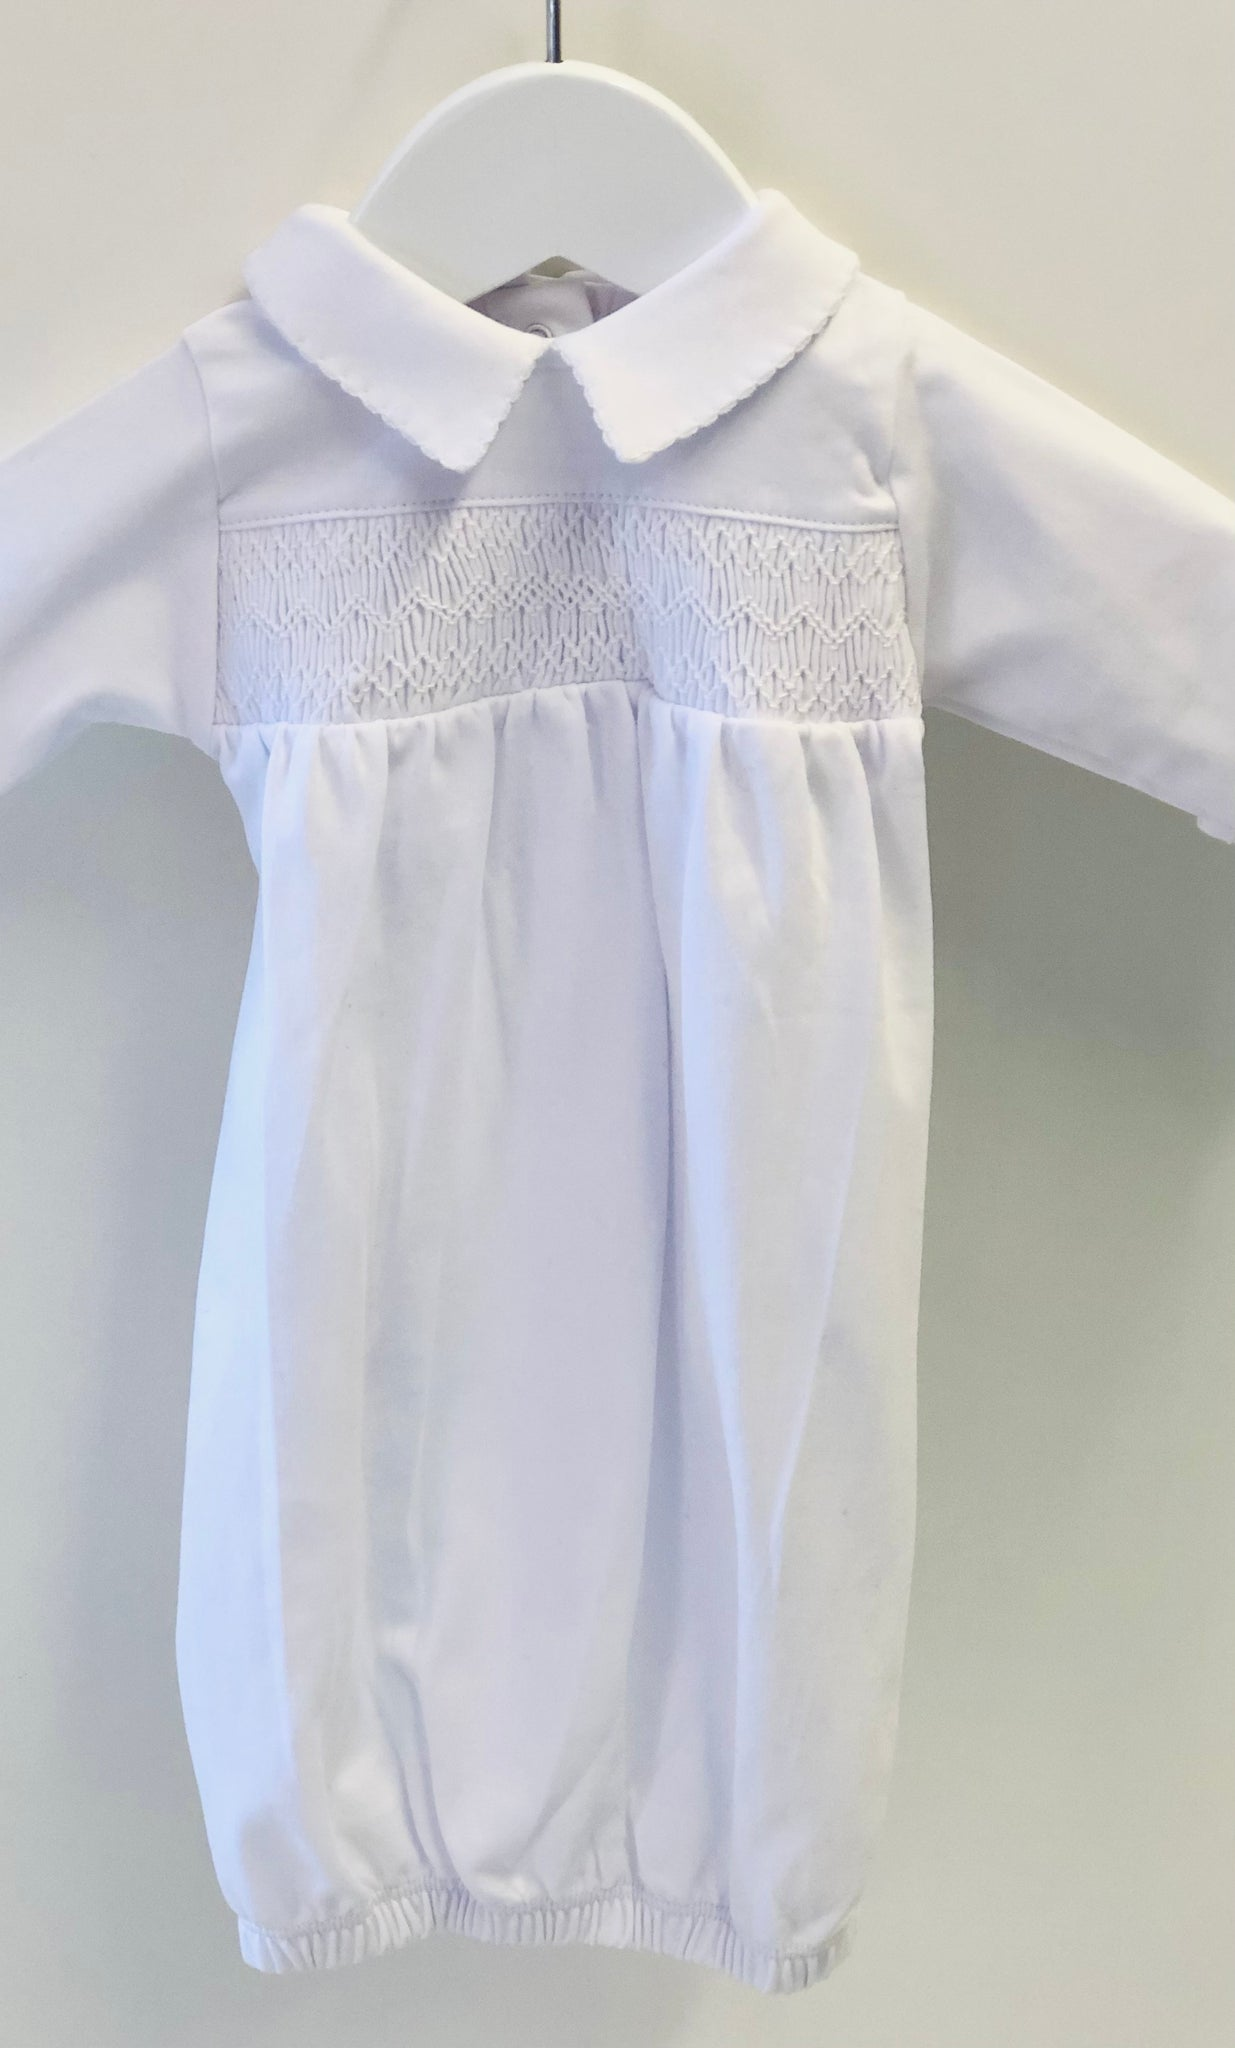 Magnolia Baby Smocked White Daygown